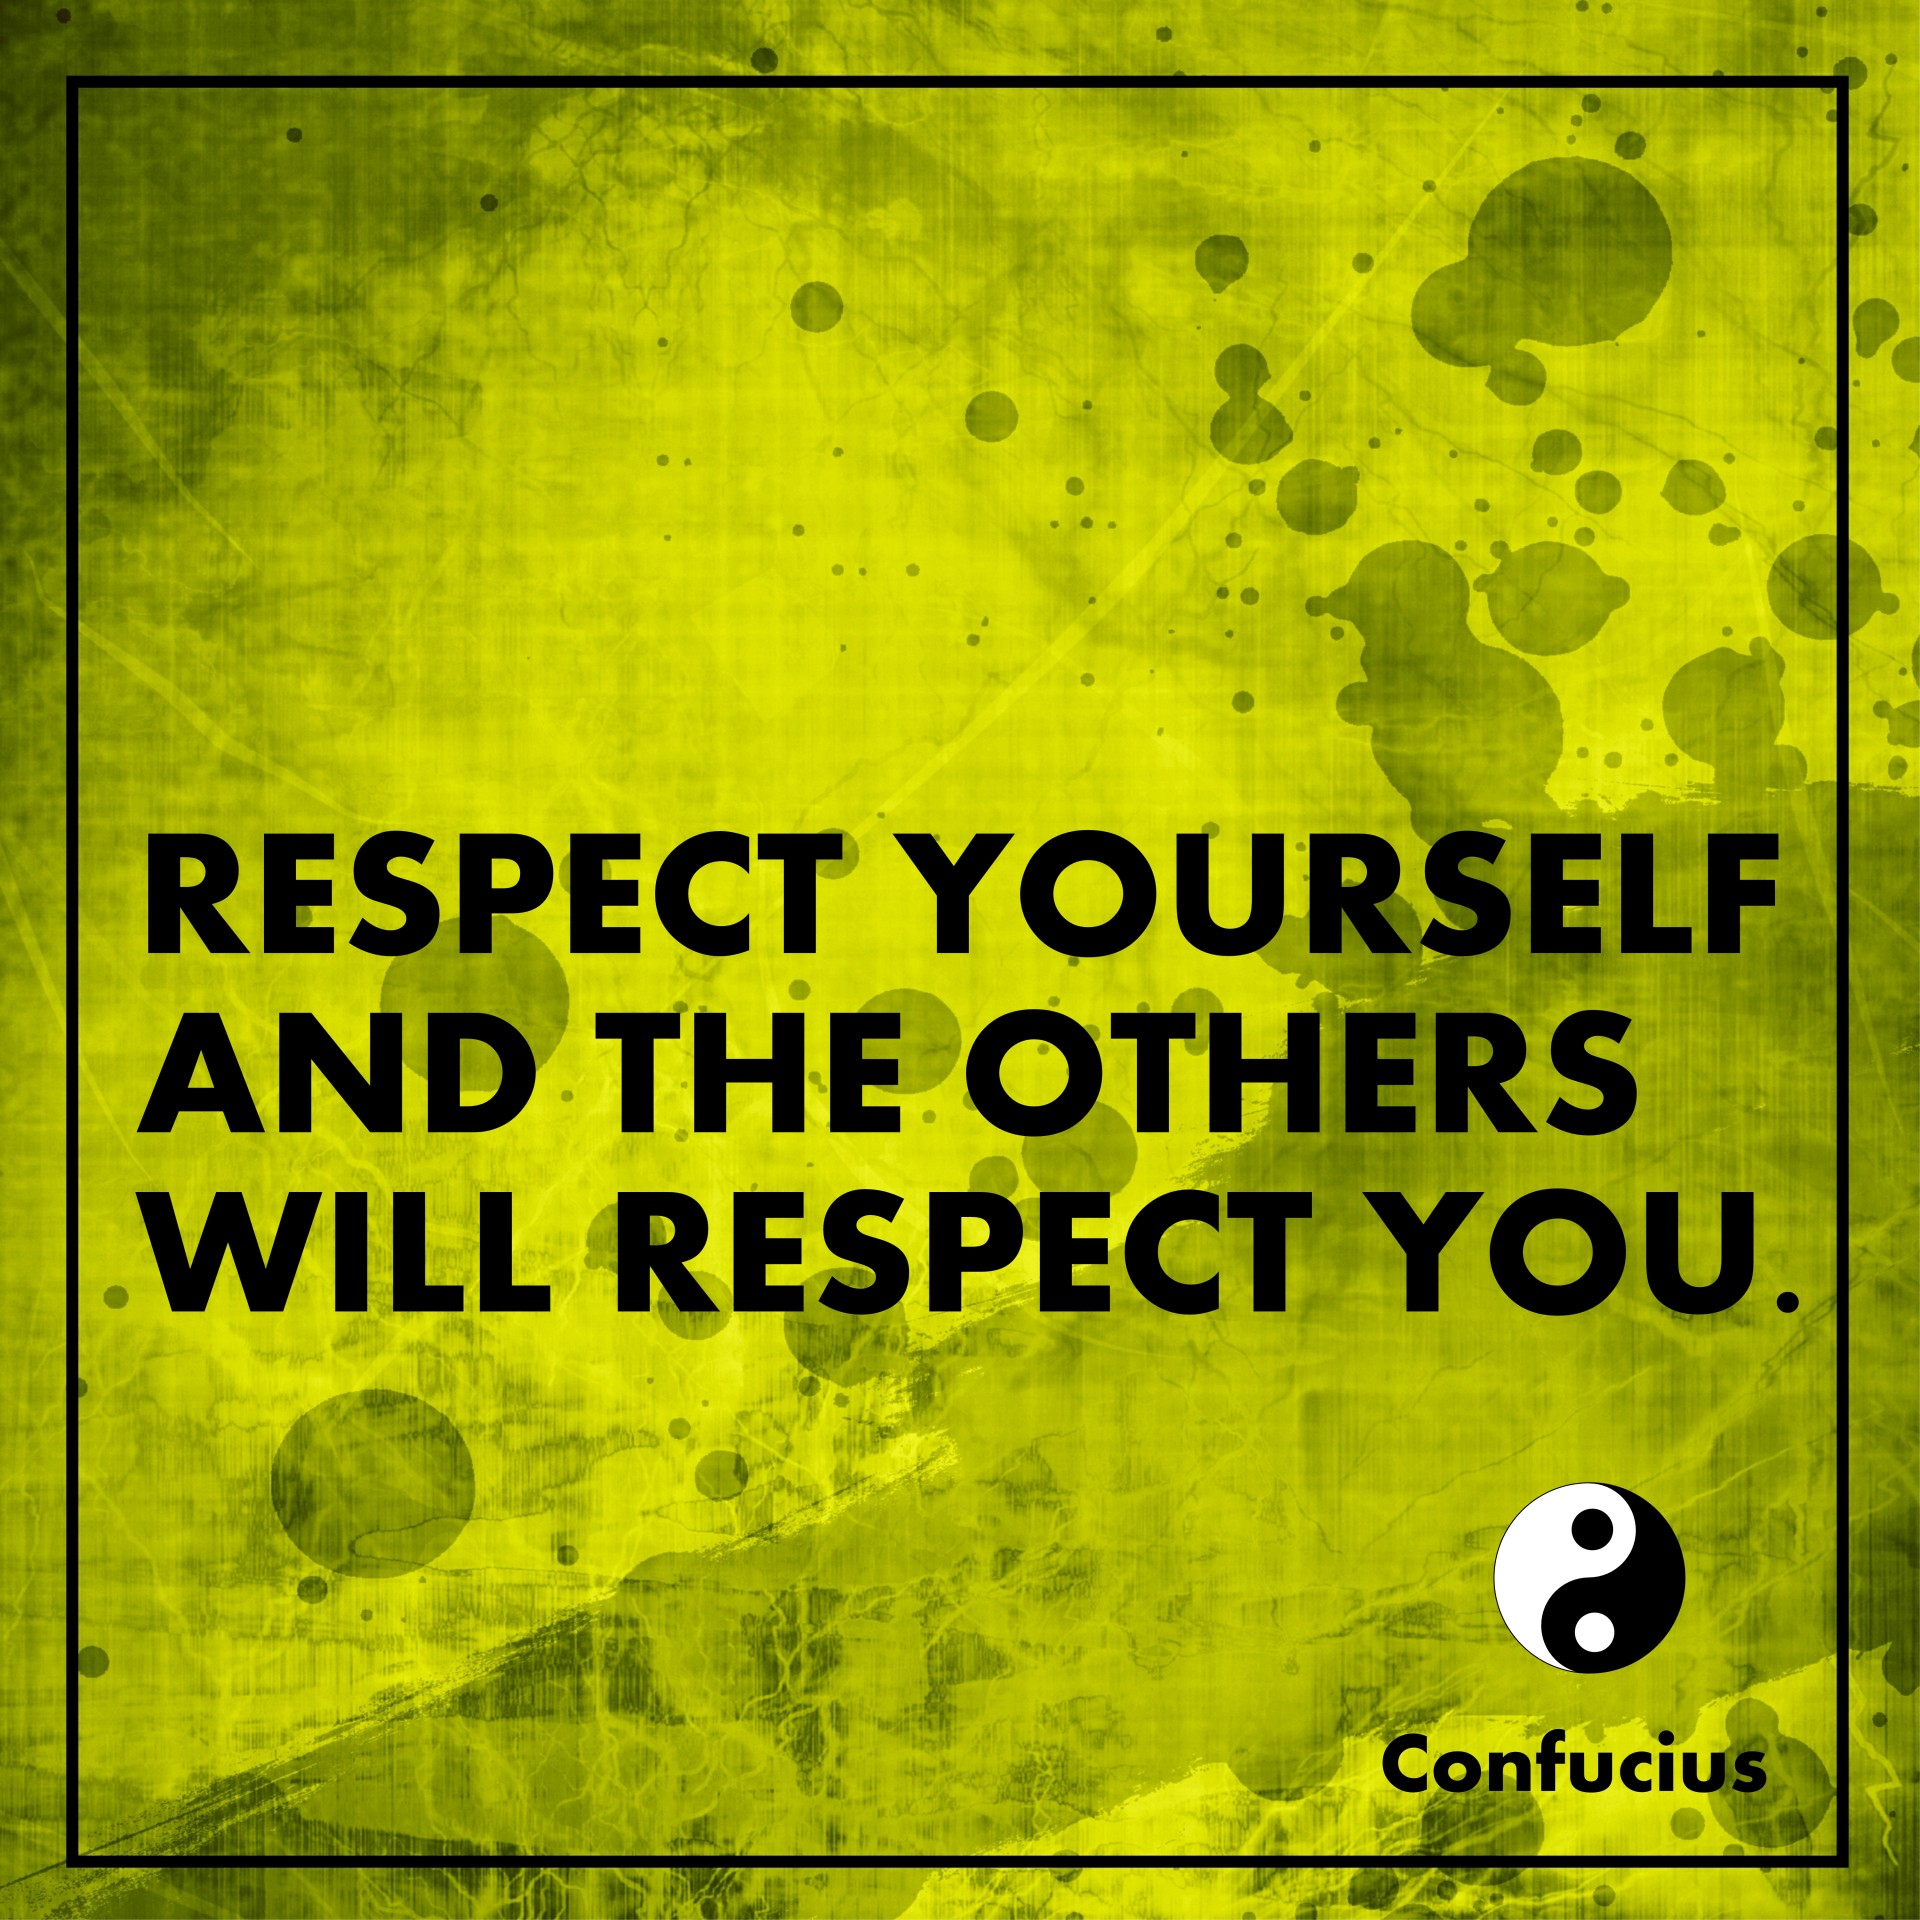 Quotes For Your Wallpaper Respect Yourself Confucius Free Stock Photo Public